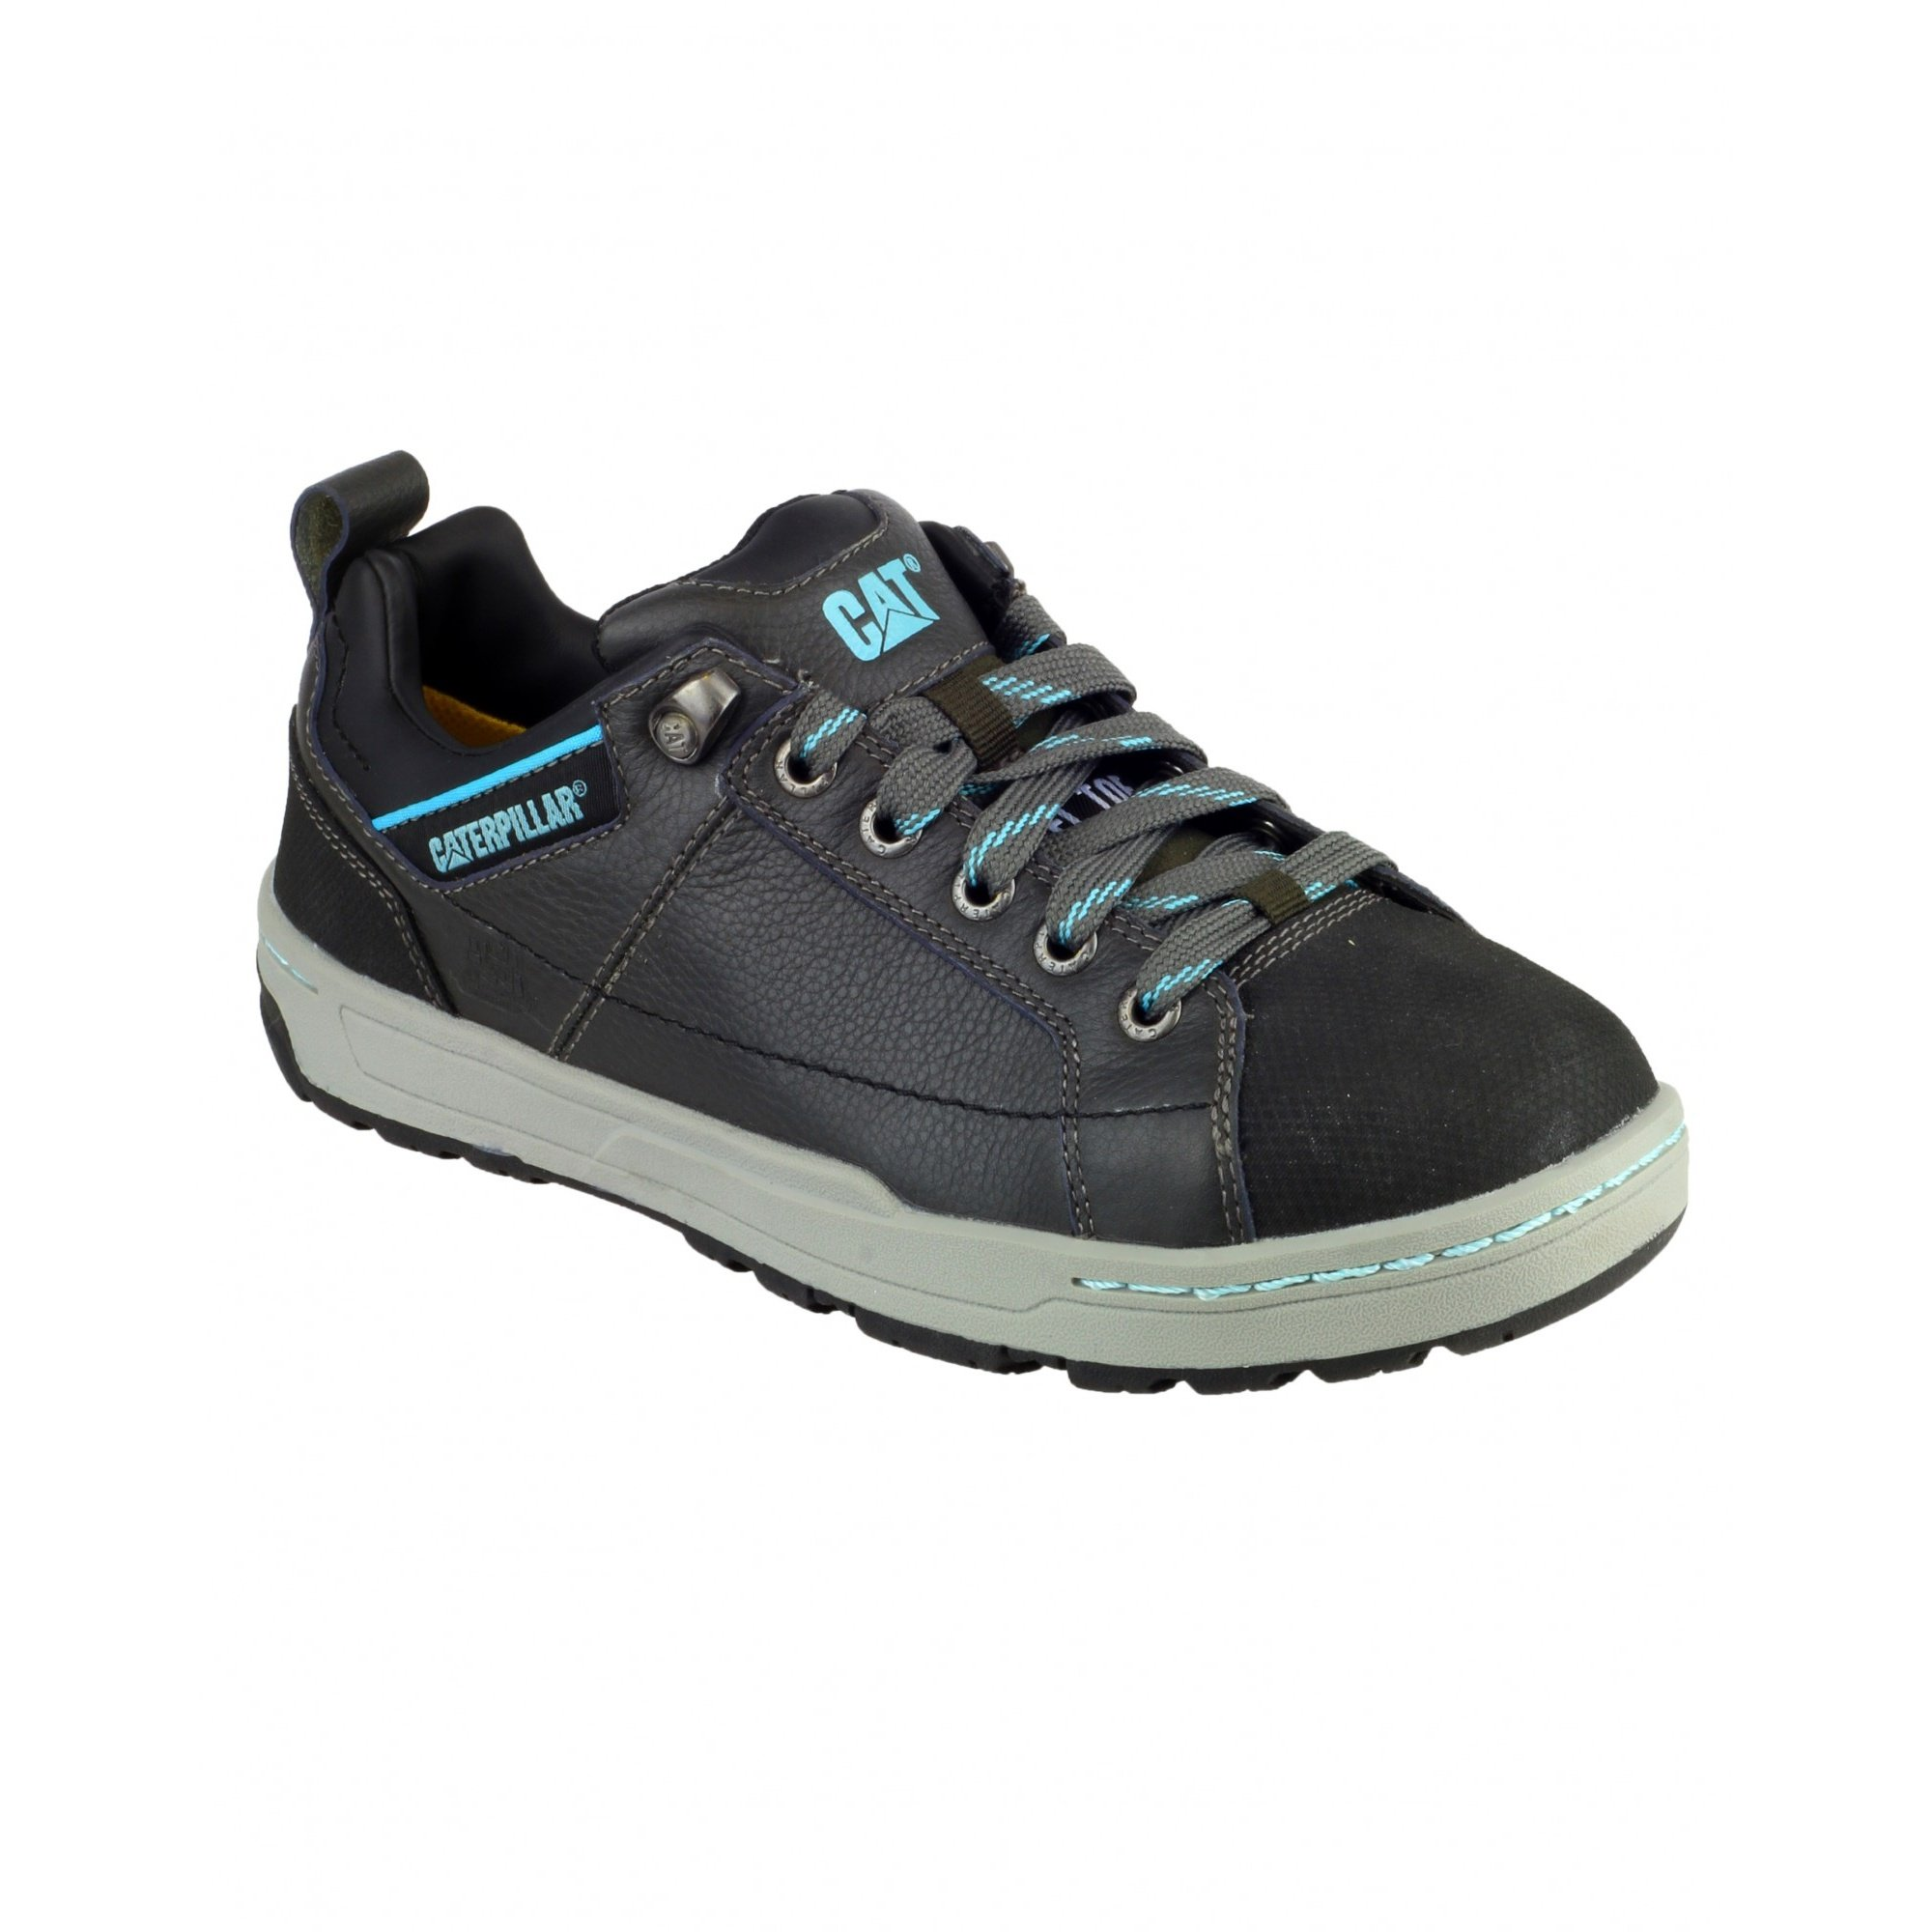 Caterpillar Brode Ladies / Womens Shoes (9 US) (Dark Grey) by Caterpillar